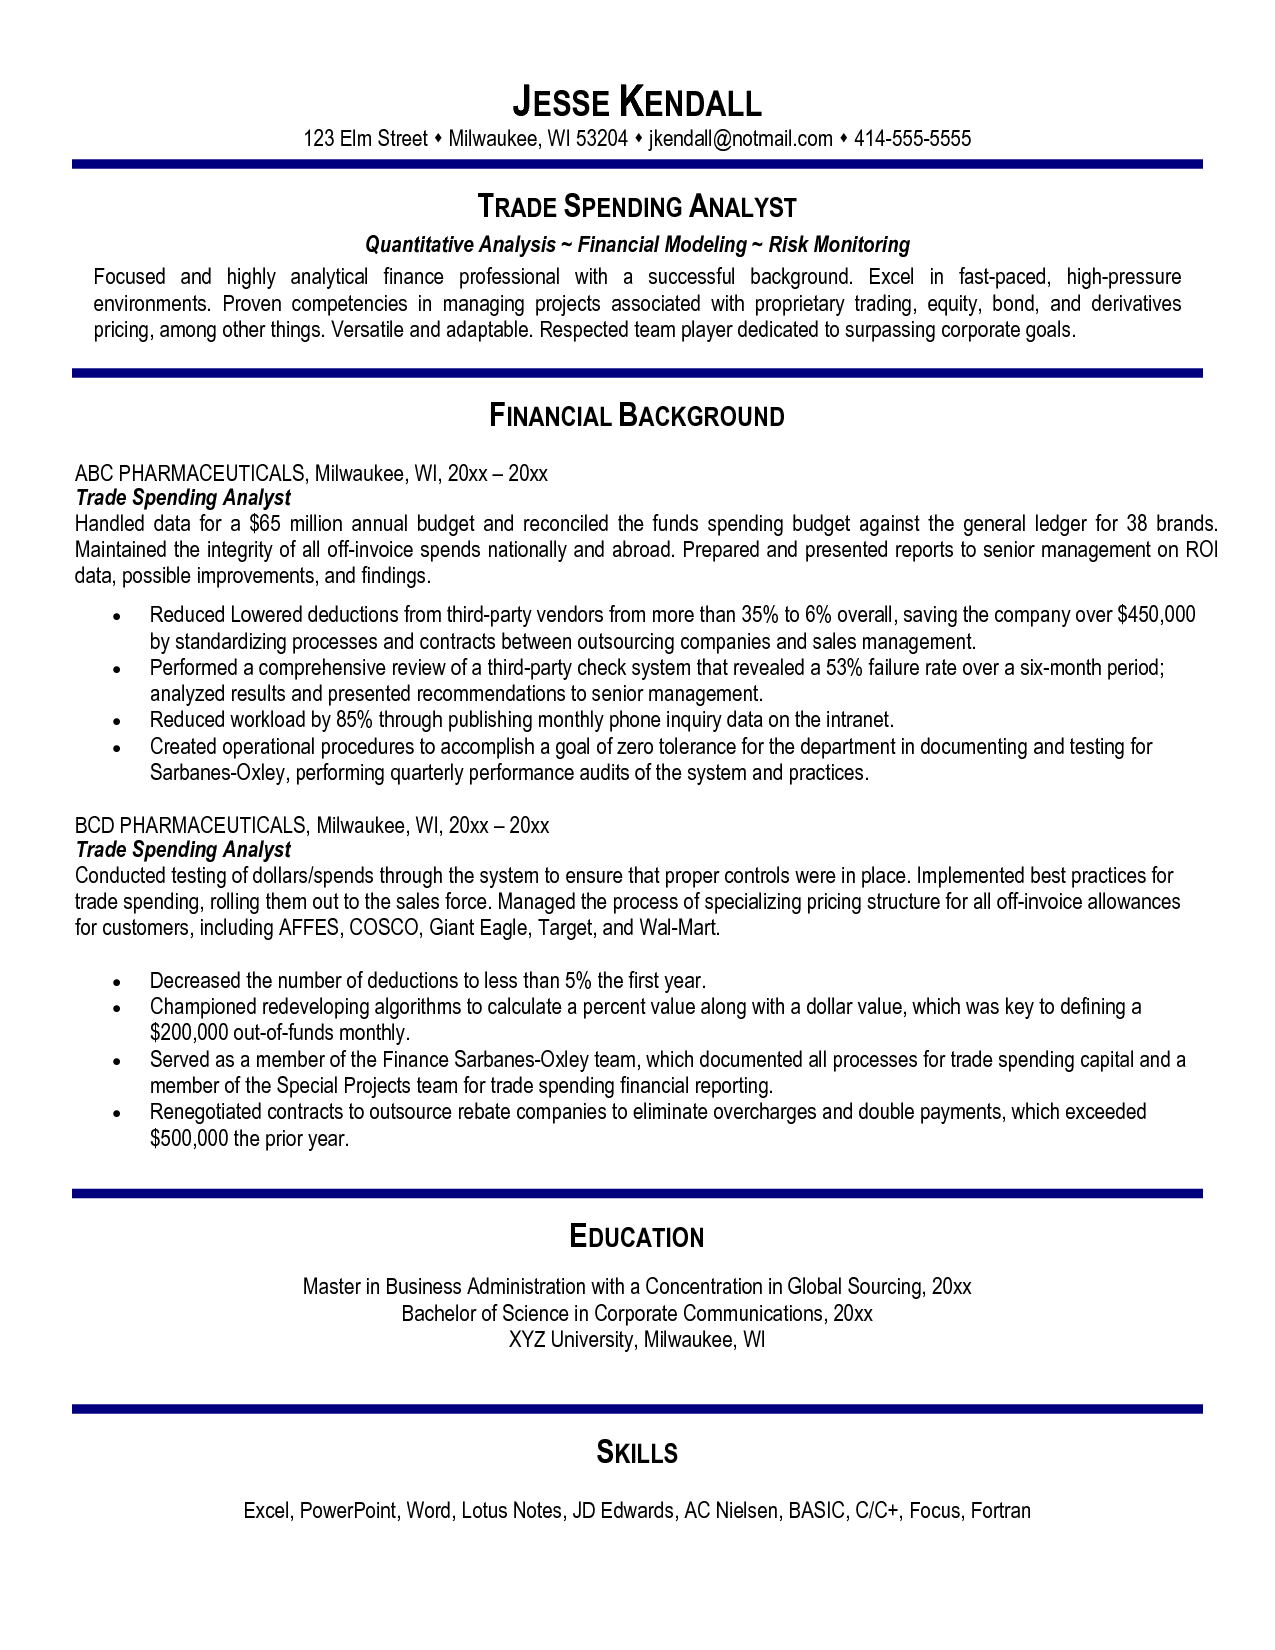 Senior Financial Analyst Resume Sales And Trading Resume Objective  Pricing Analyst Resume